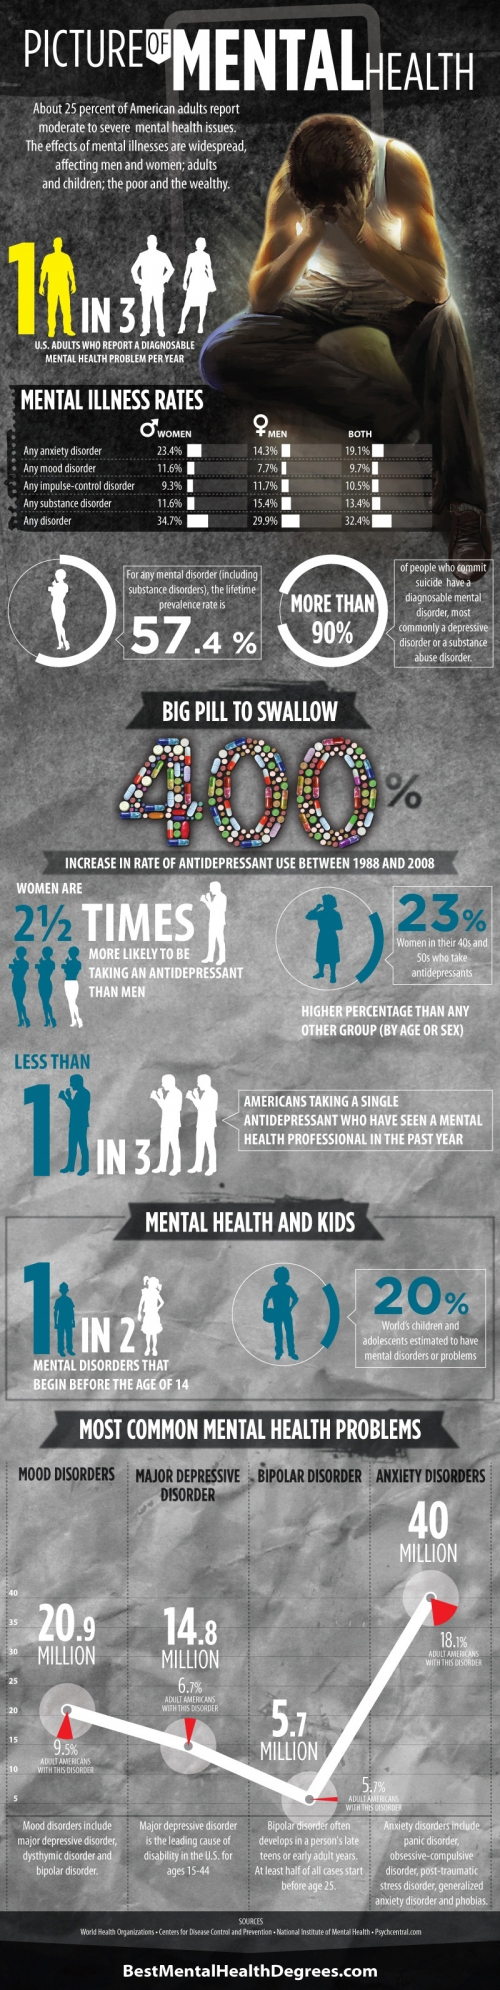 facts about depression and mental illness